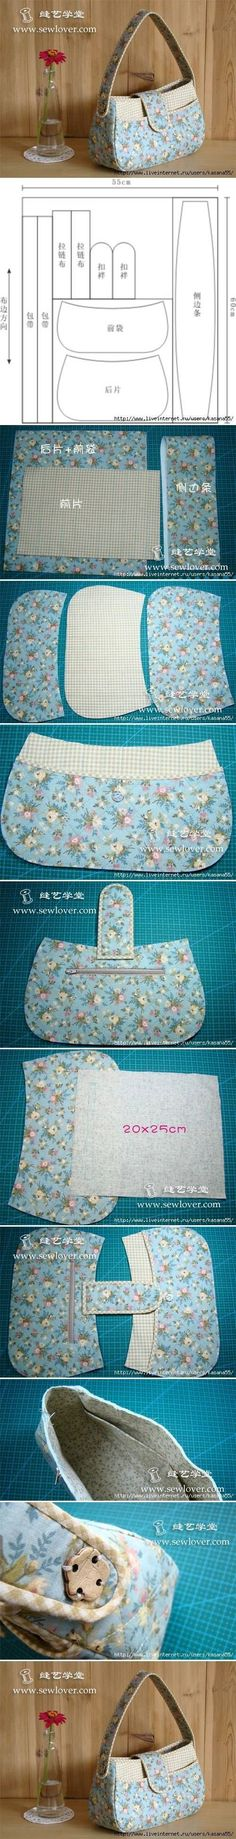 59 Ideas diy fashion bags tuto sac for 2020 Patchwork Bags, Quilted Bag, Patchwork Fabric, Purse Patterns, Sewing Patterns, Sewing Tutorials, Sewing Projects, Sewing Diy, Diy Projects